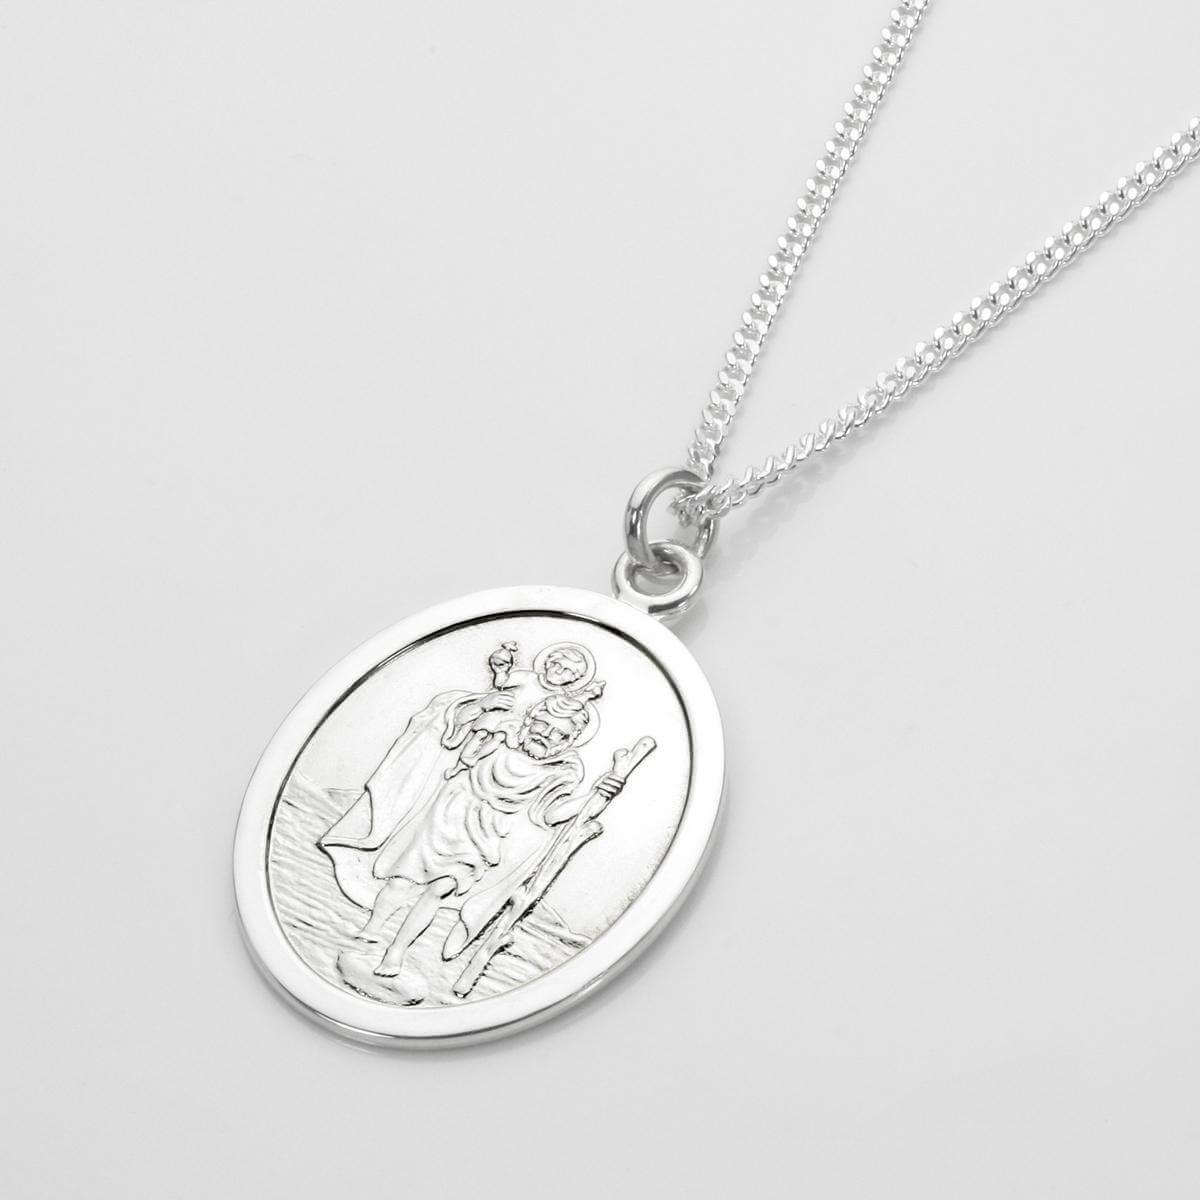 Sterling Silver Oval Saint Christopher Pendant - 16 - 24 Inches